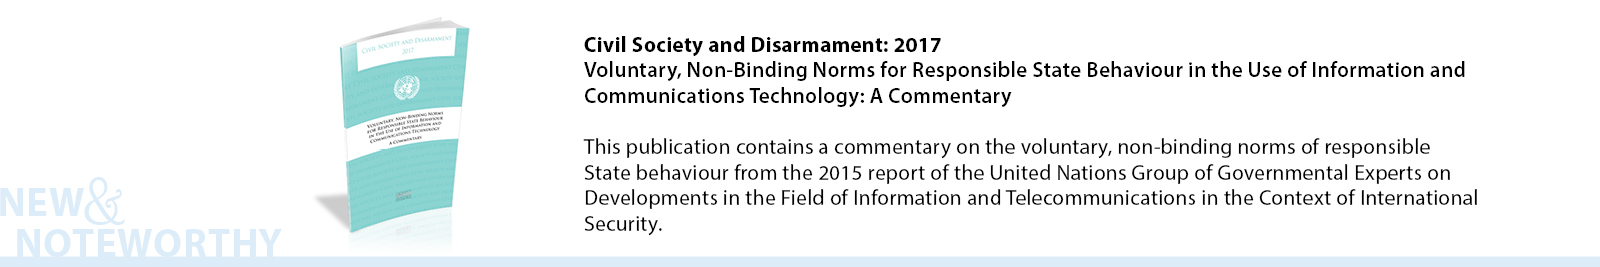 Civil Society and Disarmament: 2017 - Voluntary, Non-Binding Norms for Responsible State Behaviour in the Use of Information and Communications Technology: A Commentary - This publication contains a commentary on the voluntary, non-binding norms of responsible State behaviour from the 2015 report of the United Nations Group of Governmental Experts on Developments in the Field of Information and Telecommunications in the Context of International Secu